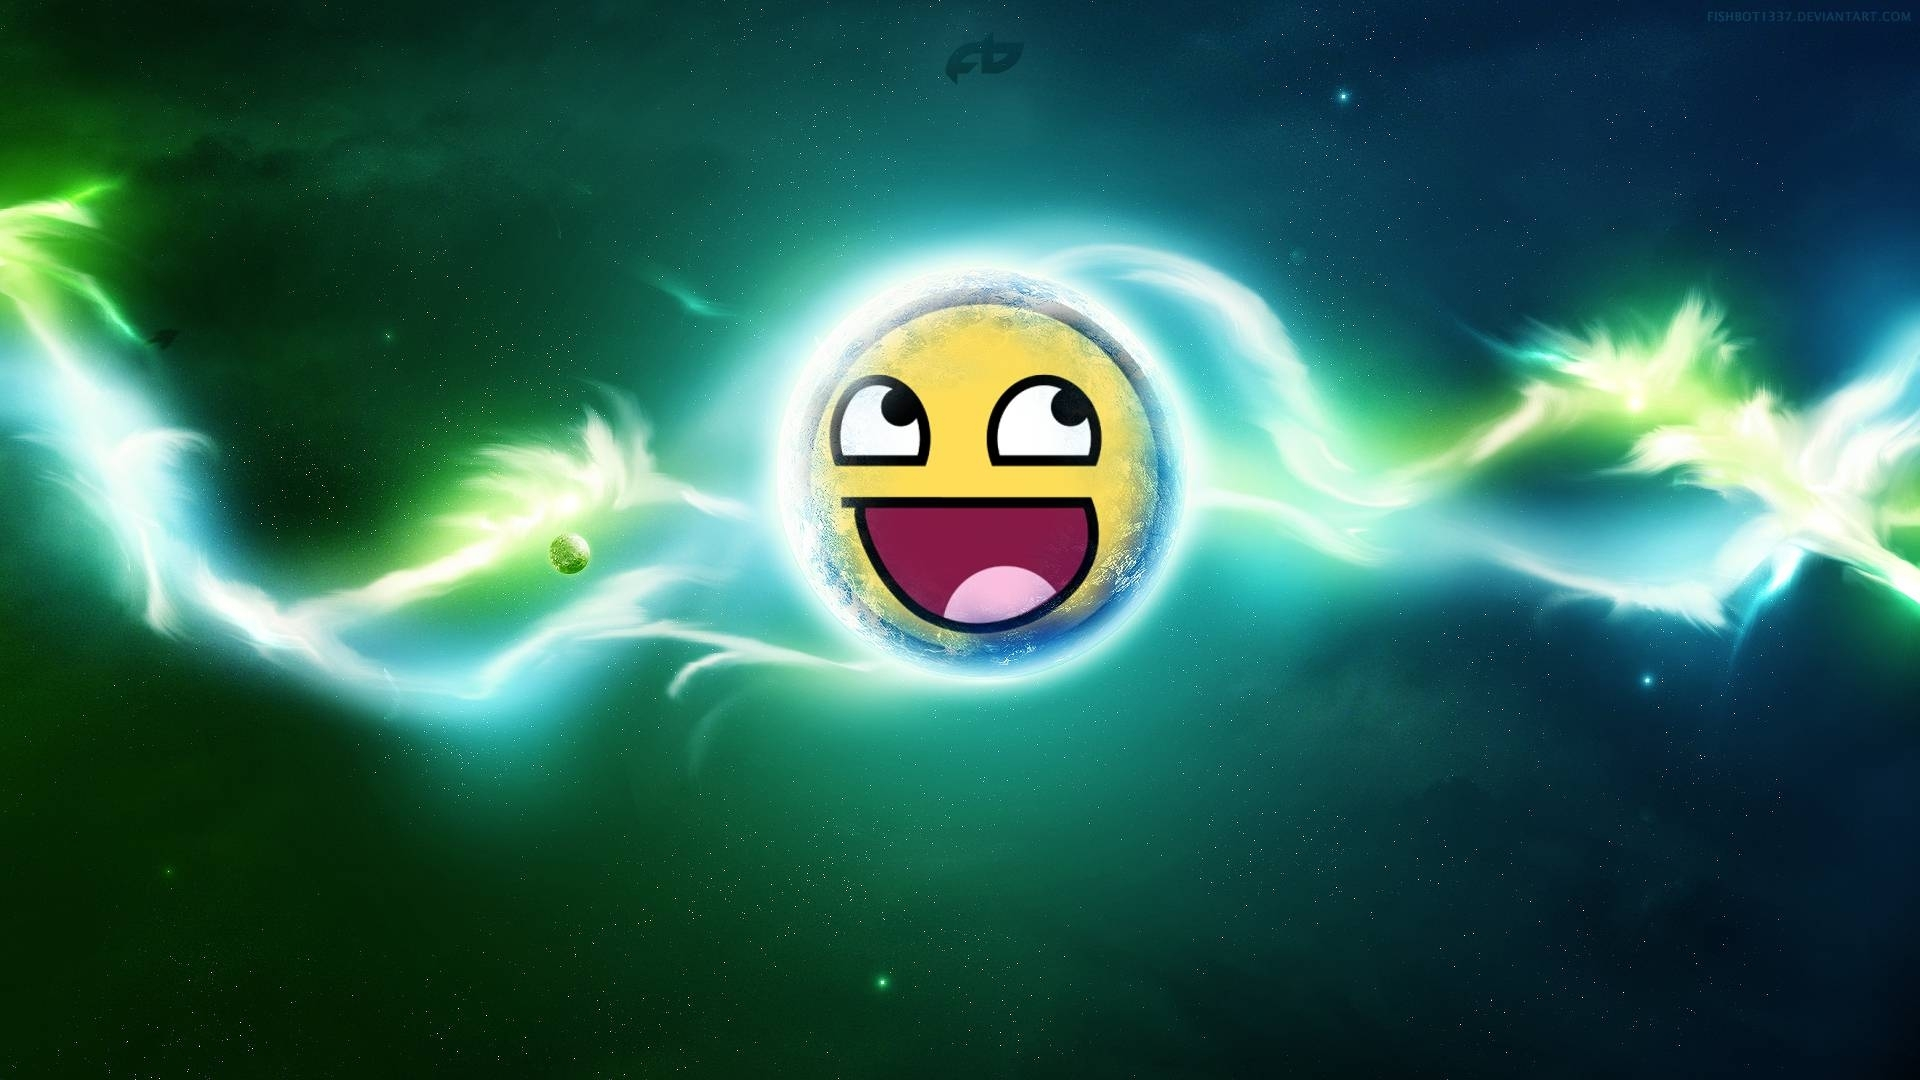 awesome face backgrounds - wallpaper cave